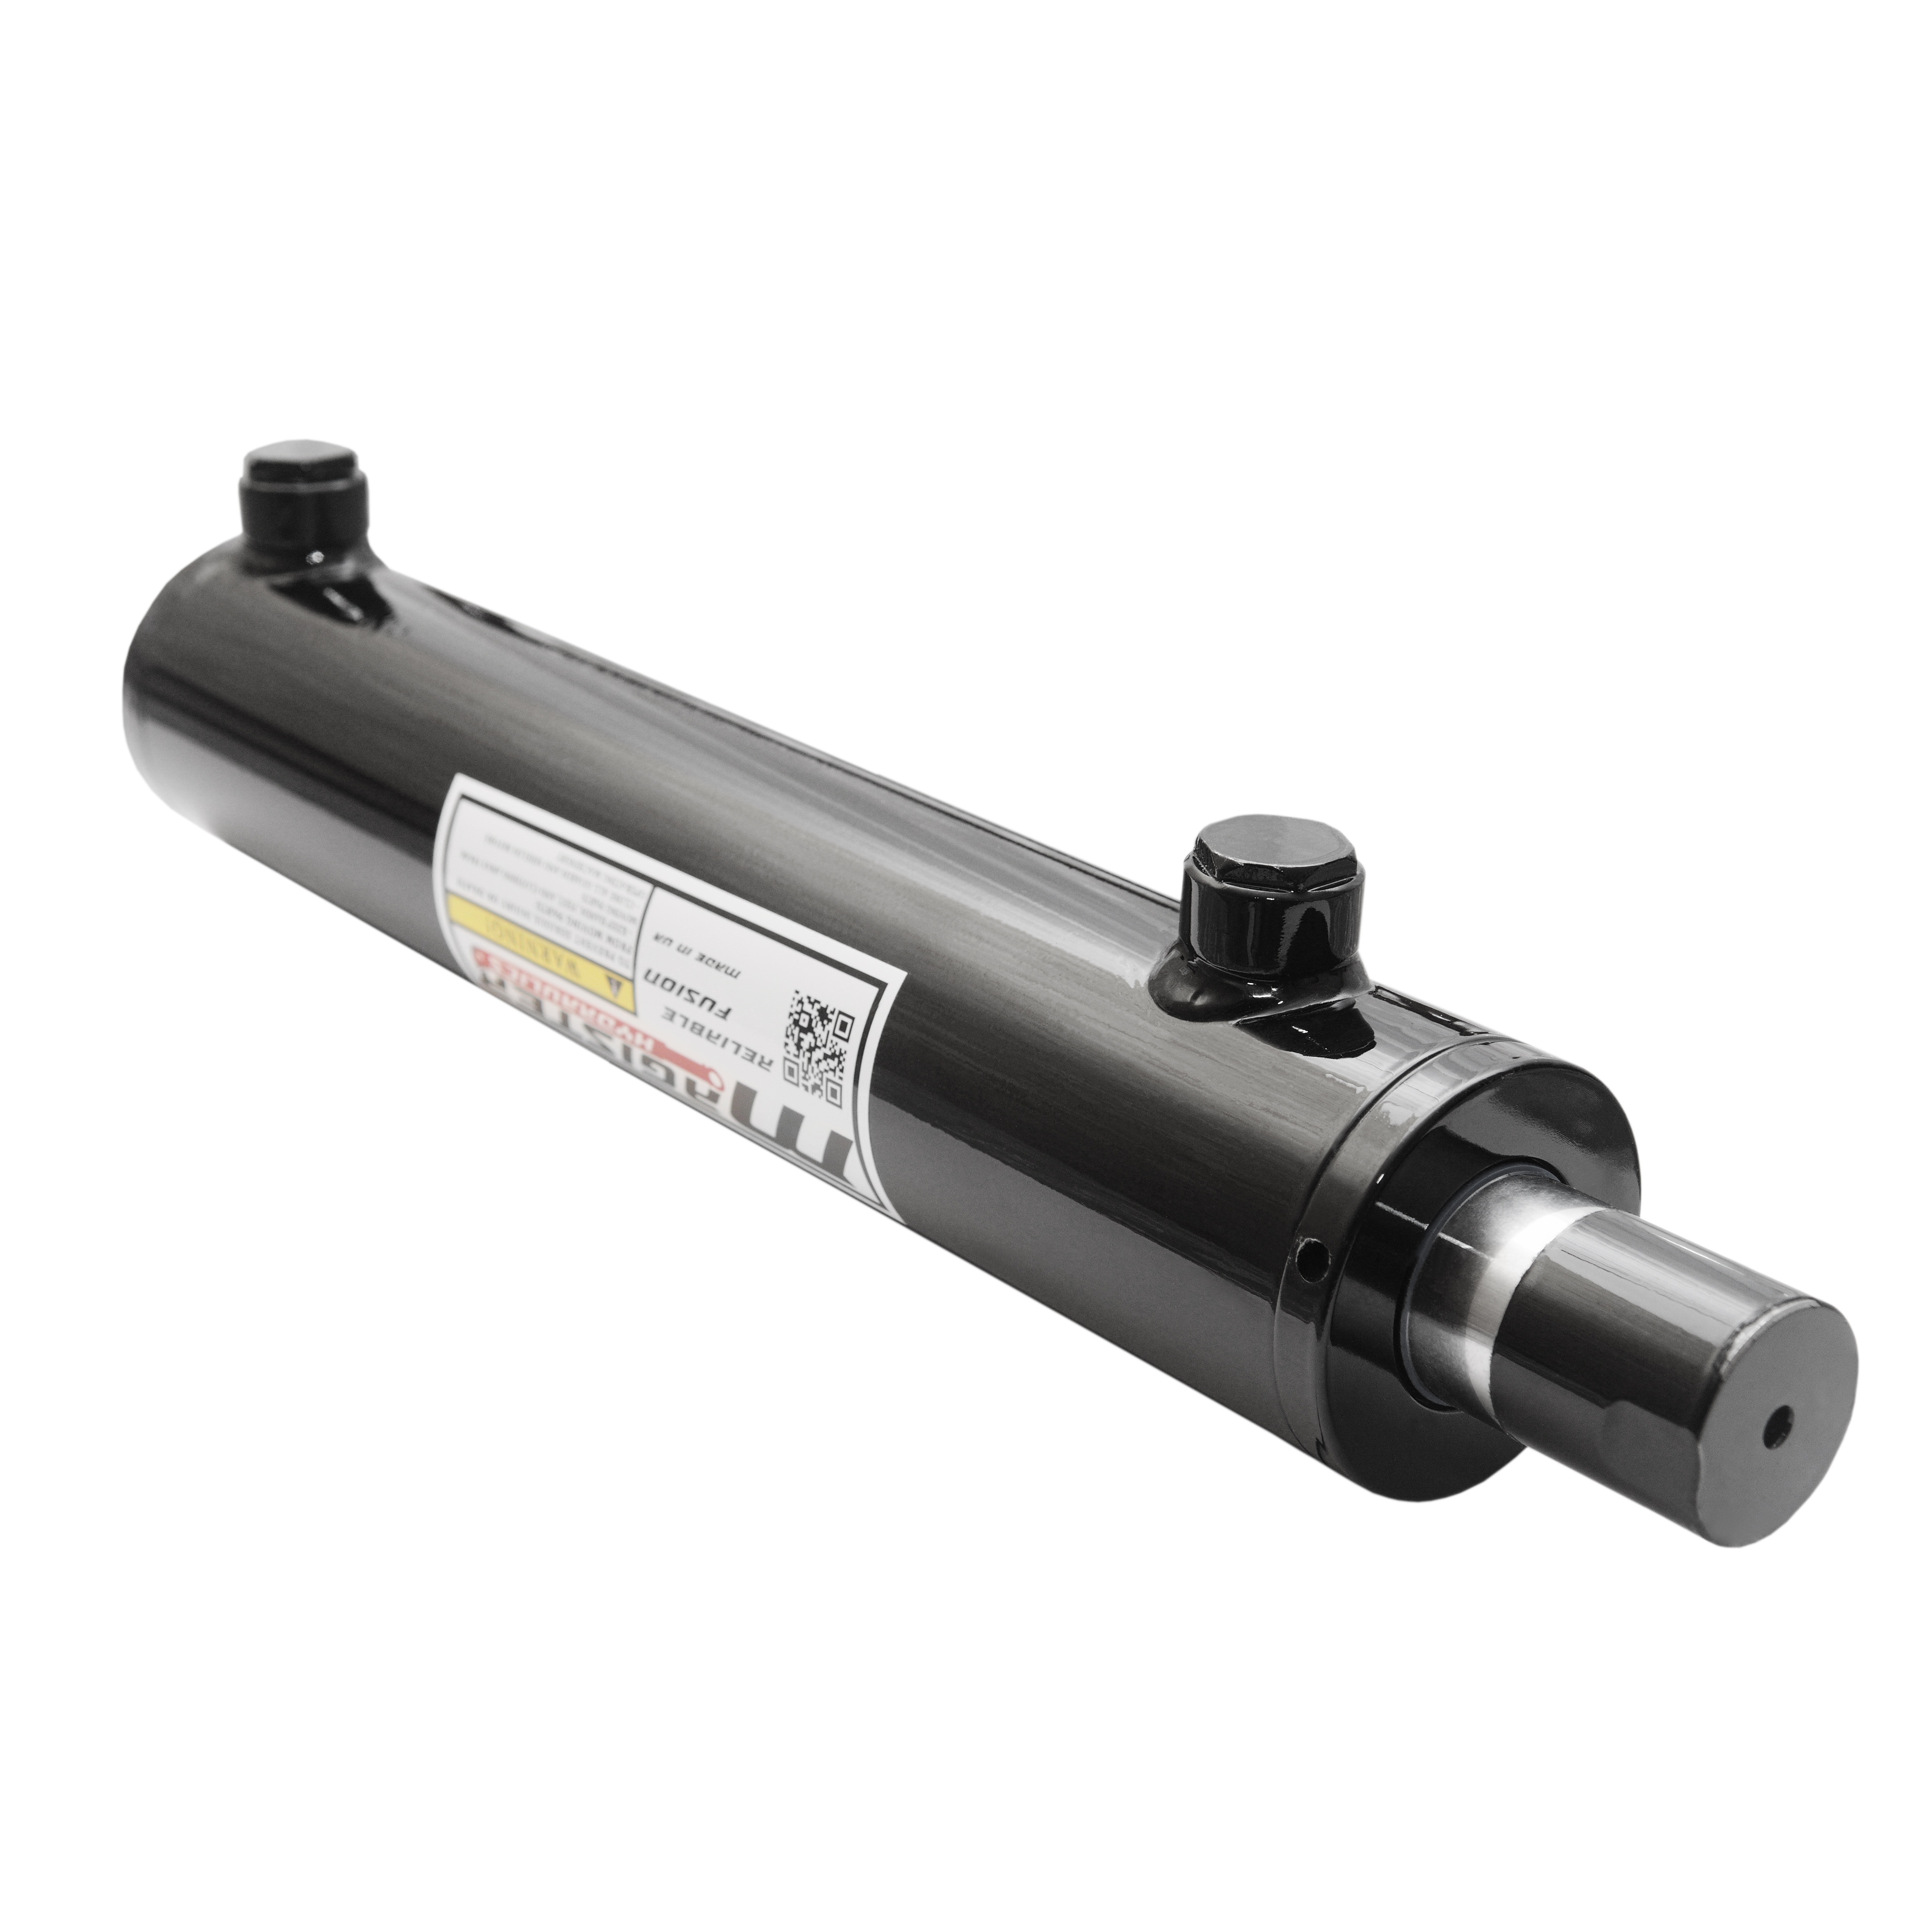 2 bore x 14 stroke hydraulic cylinder, welded universal double acting cylinder | Magister Hydraulics